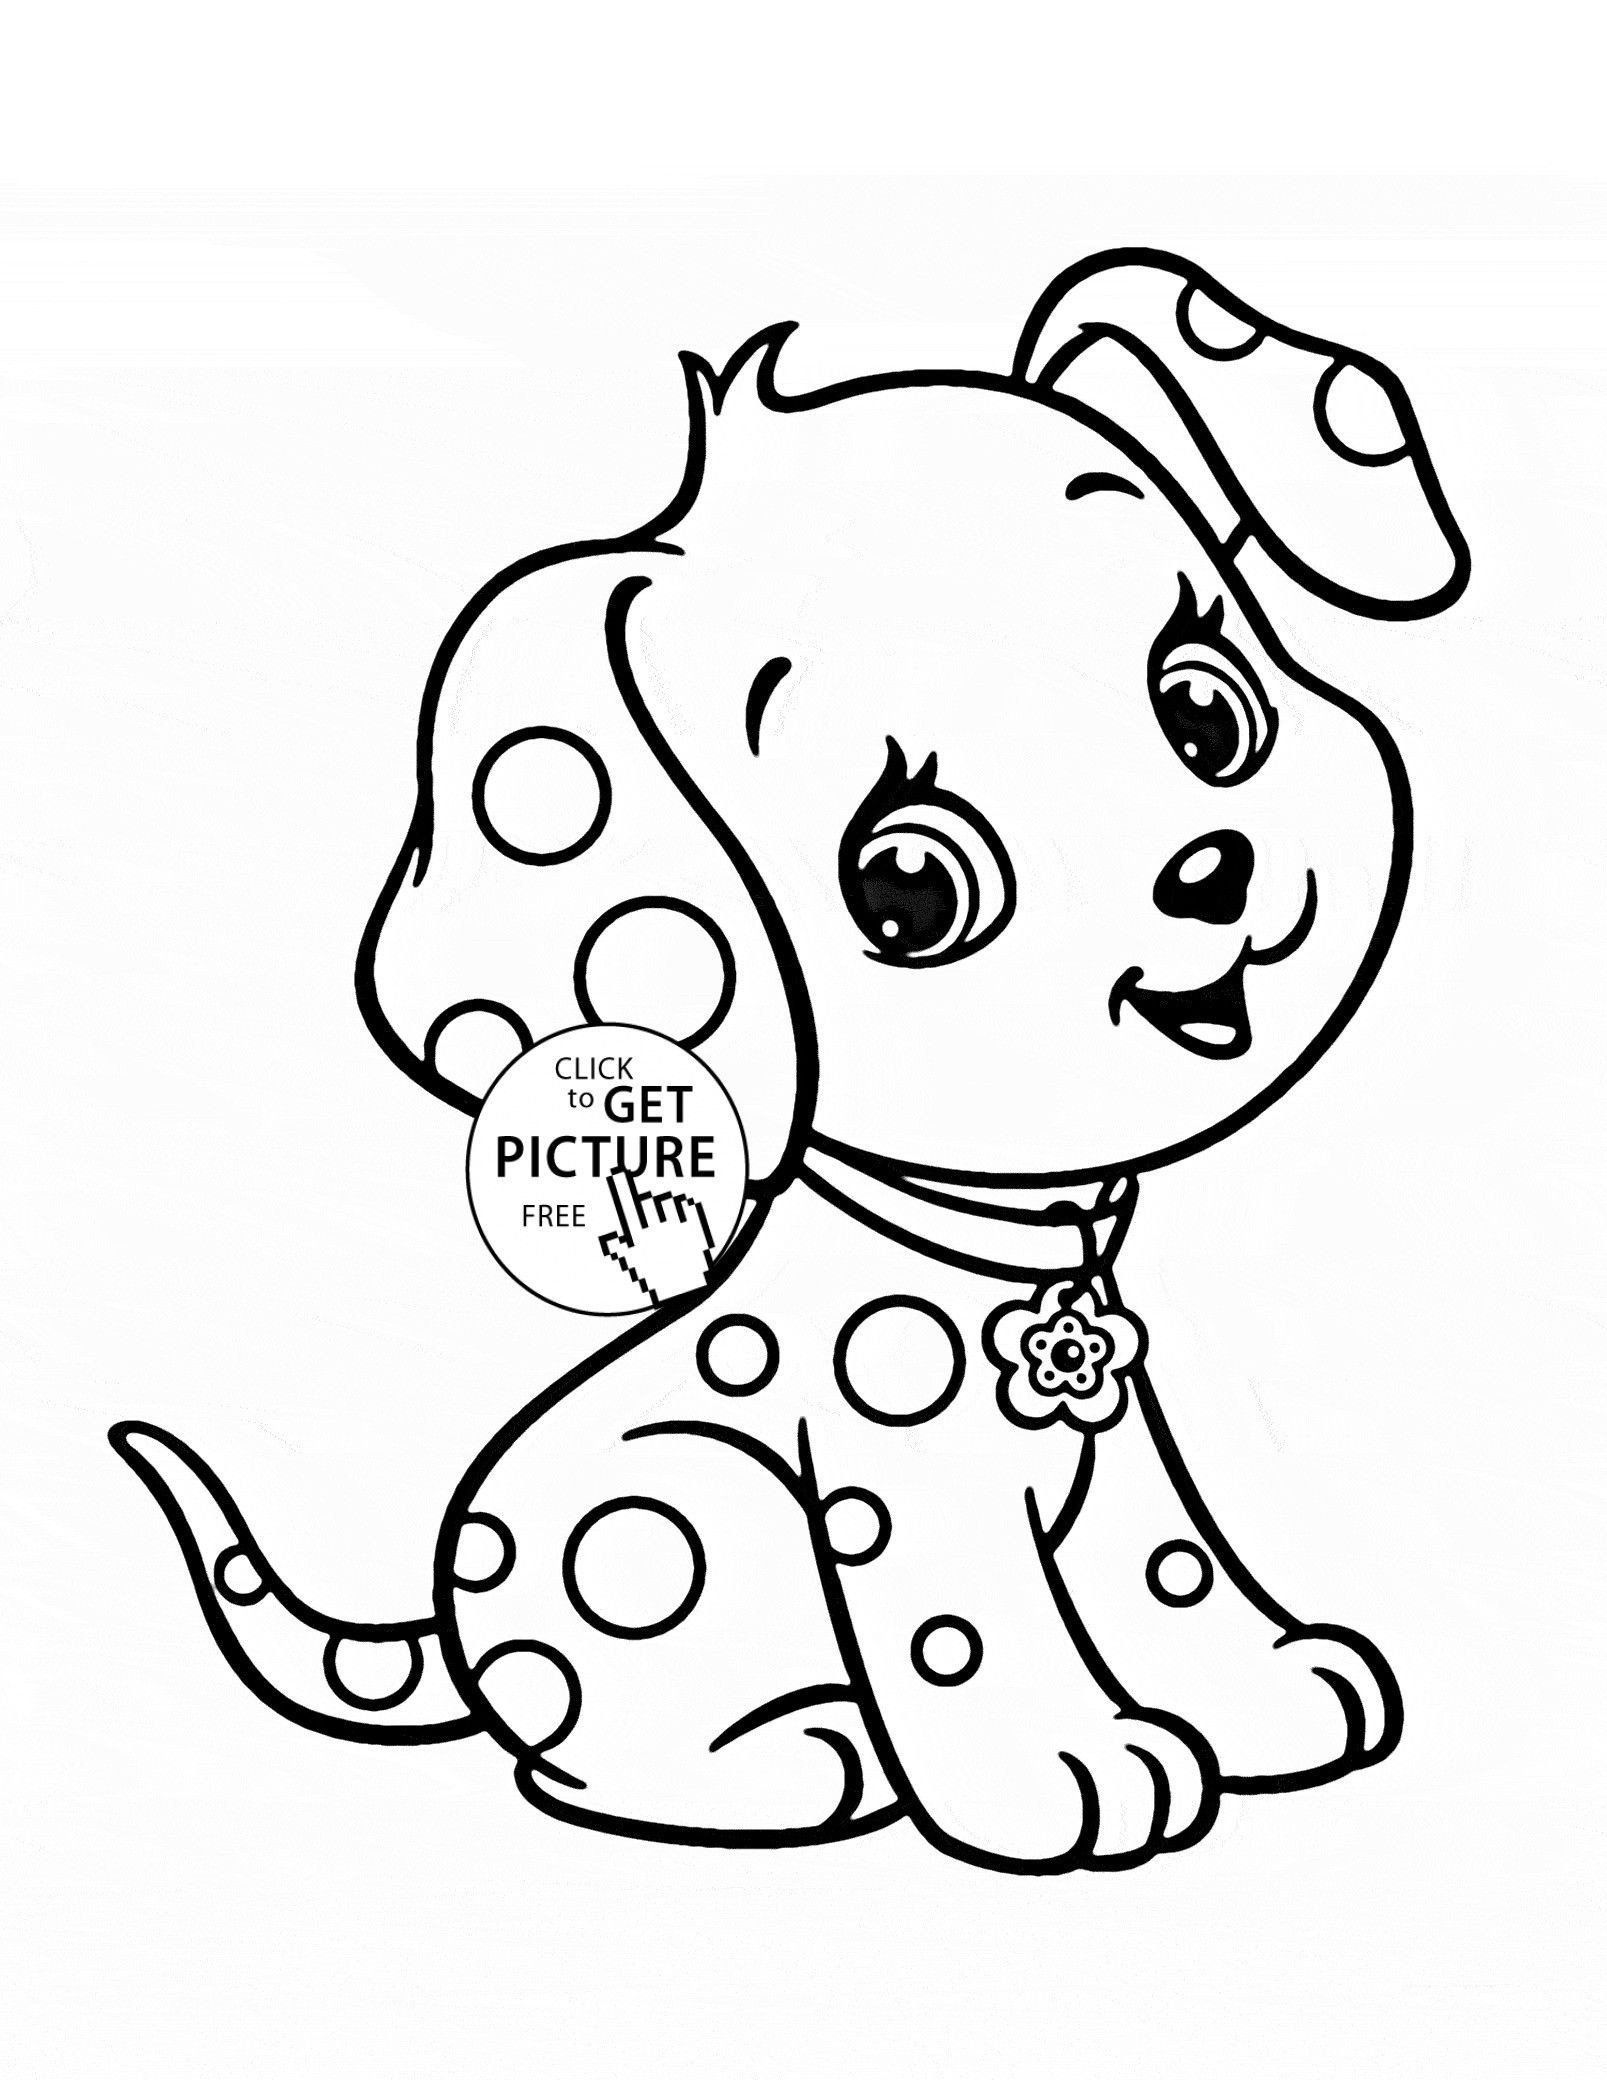 - Anatomy Coloring Book Pdf New Lovely Animal Coloring Book Pdf In